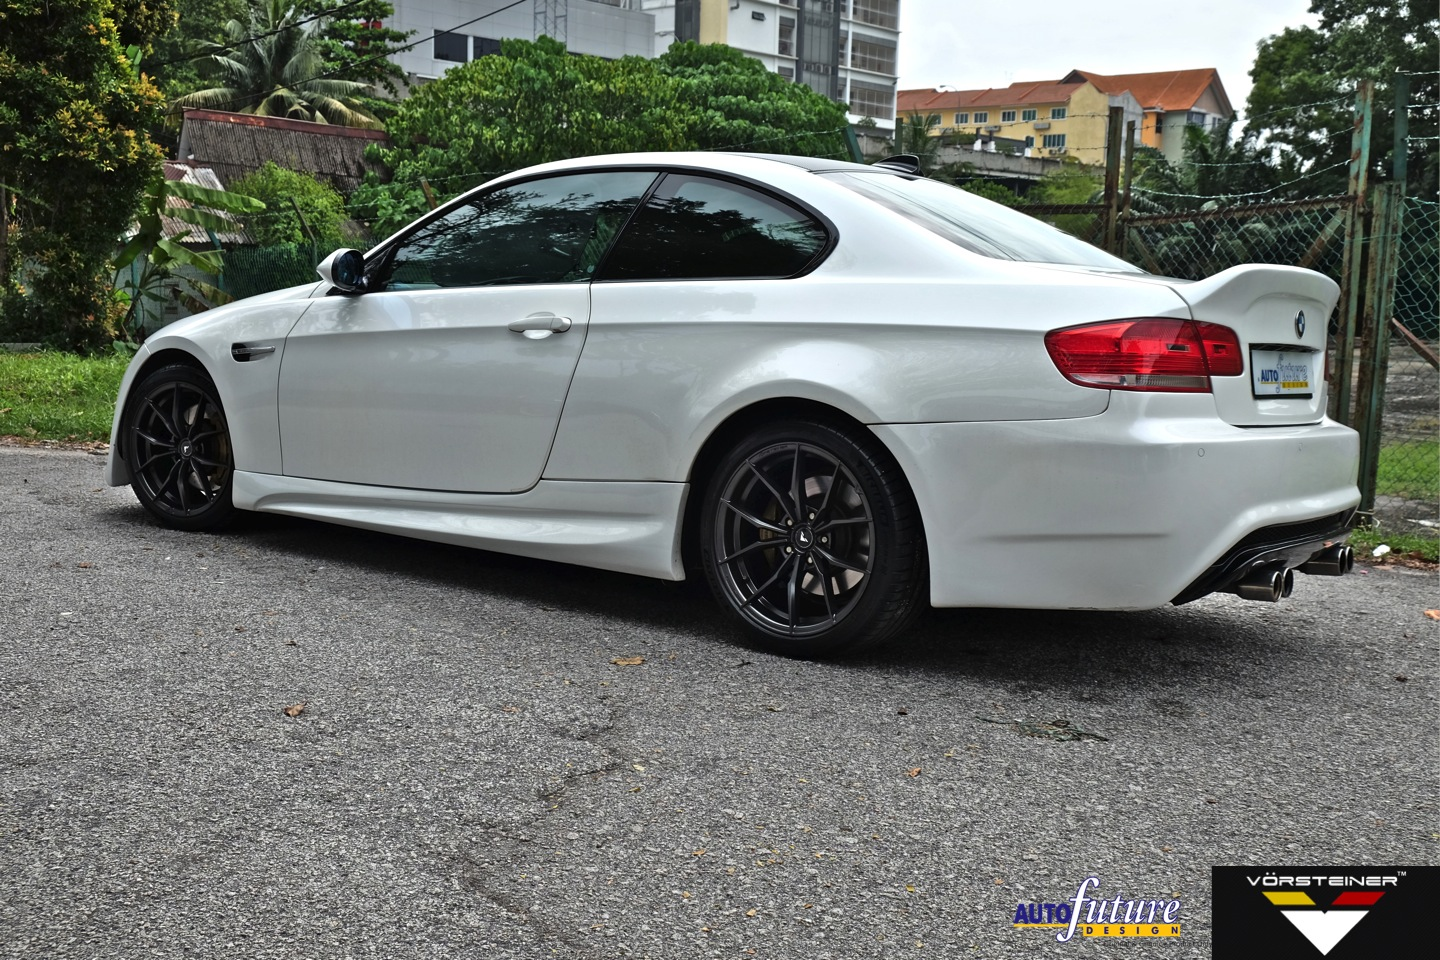 bmw e92 335i equipped with vorsteiner s latest v ff 108 wheels autofuture design sdn bhd. Black Bedroom Furniture Sets. Home Design Ideas